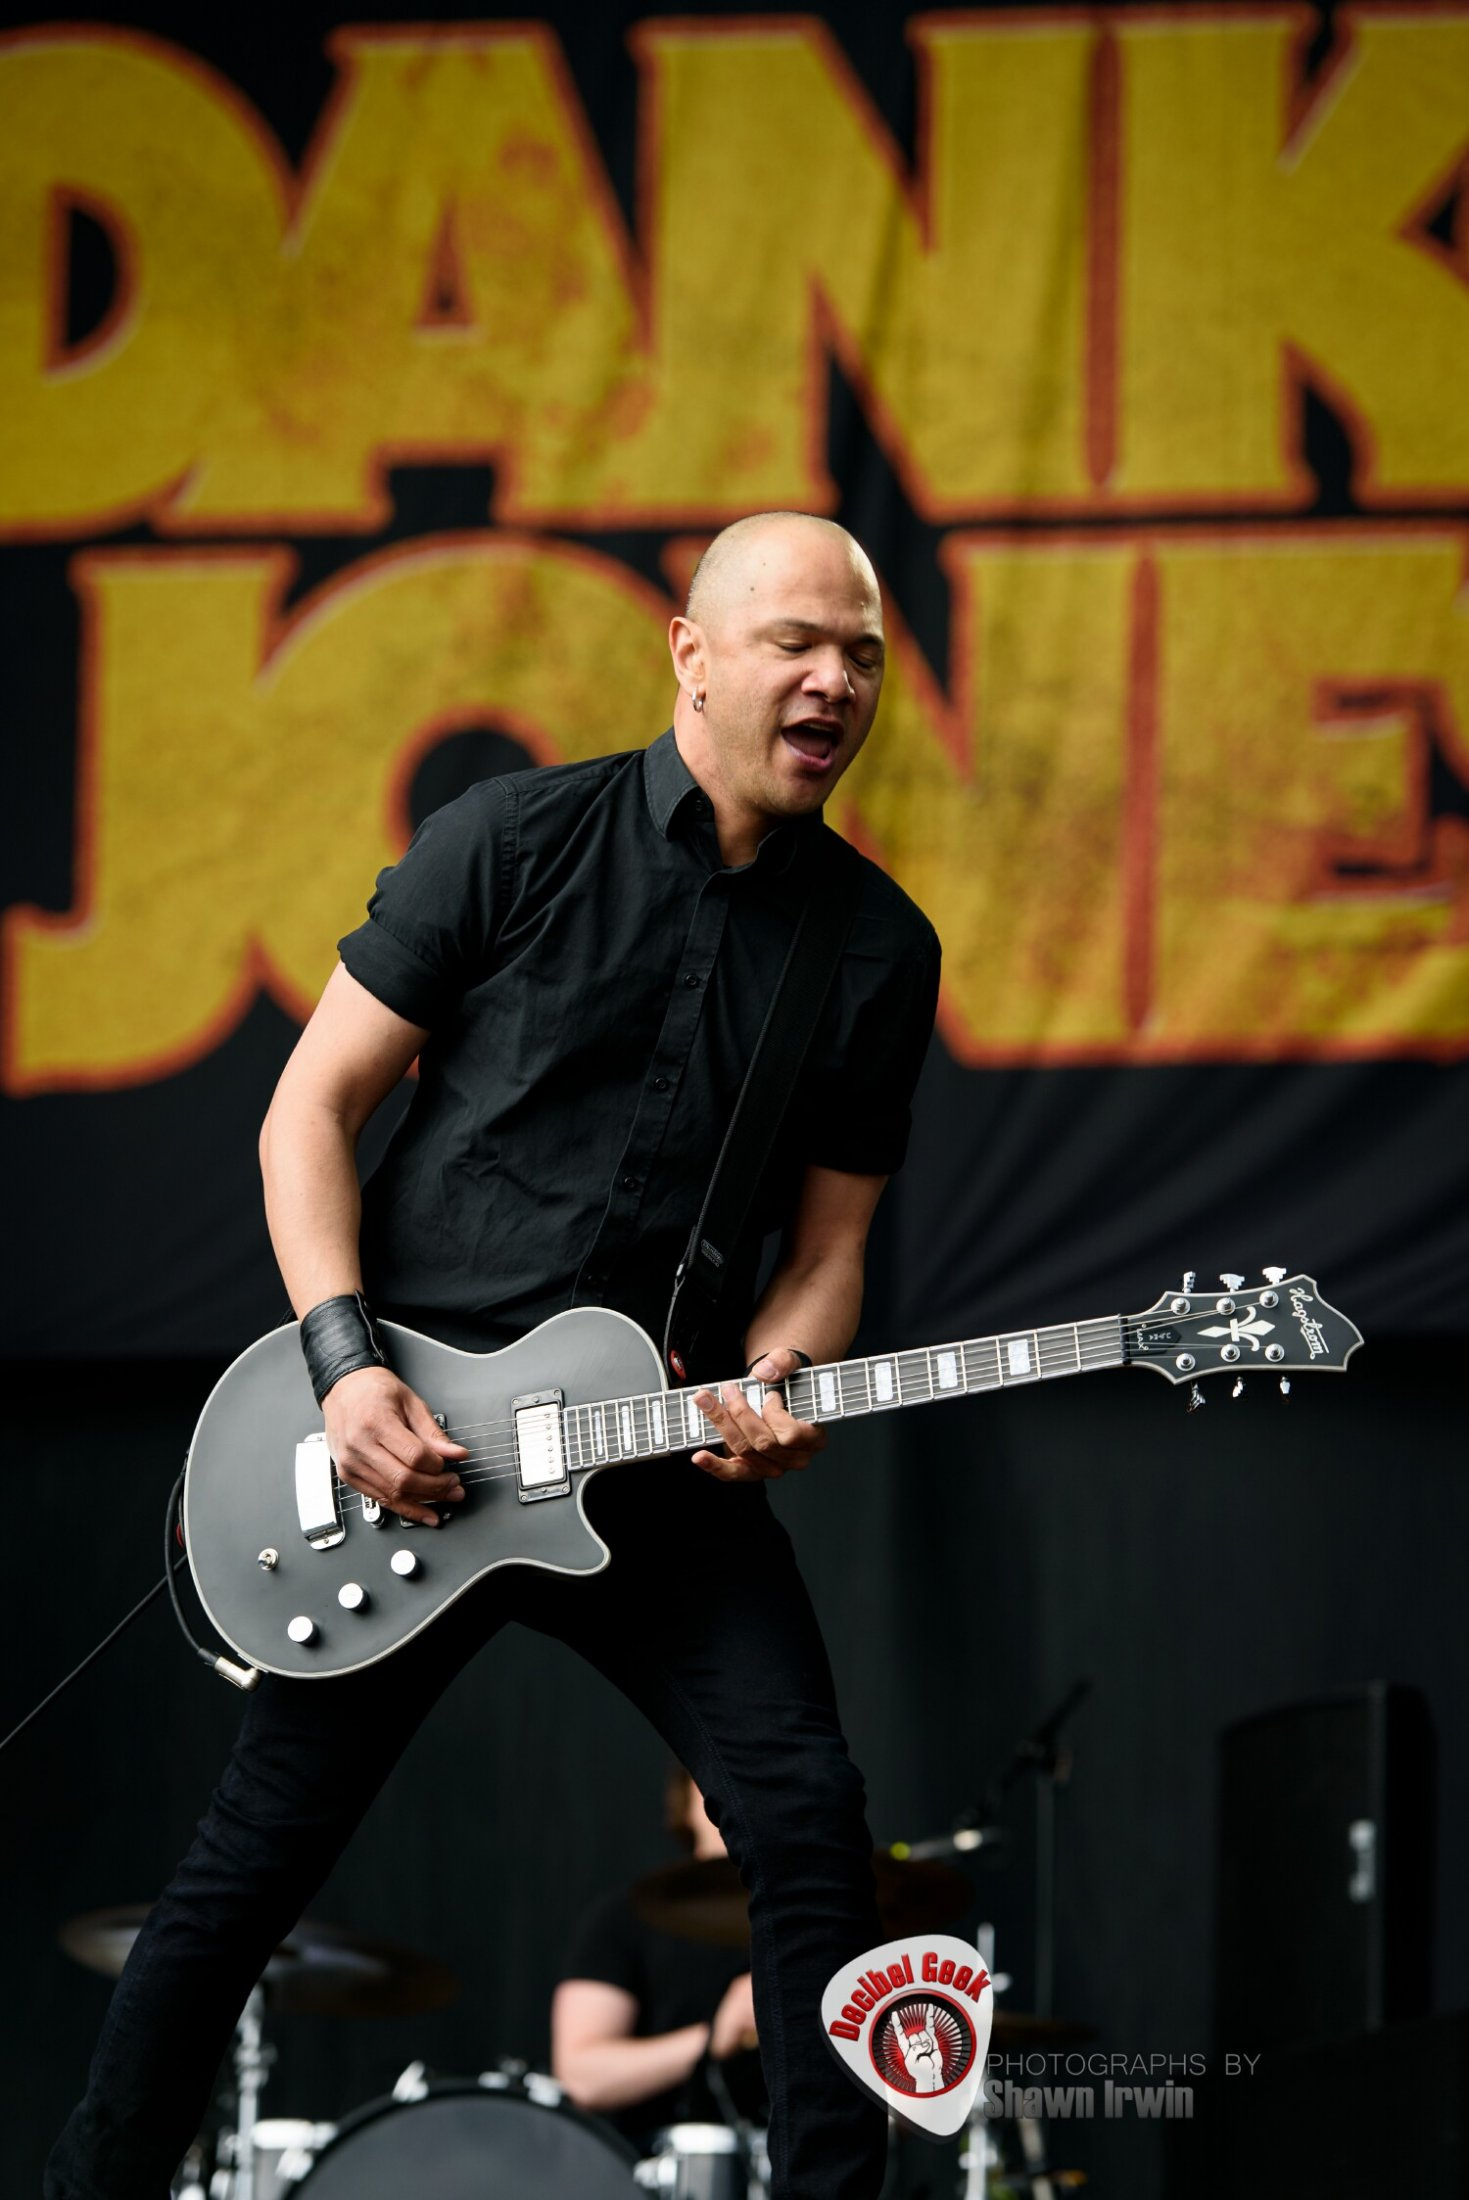 Danko Jones #7-SRF 2019-Shawn Irwin